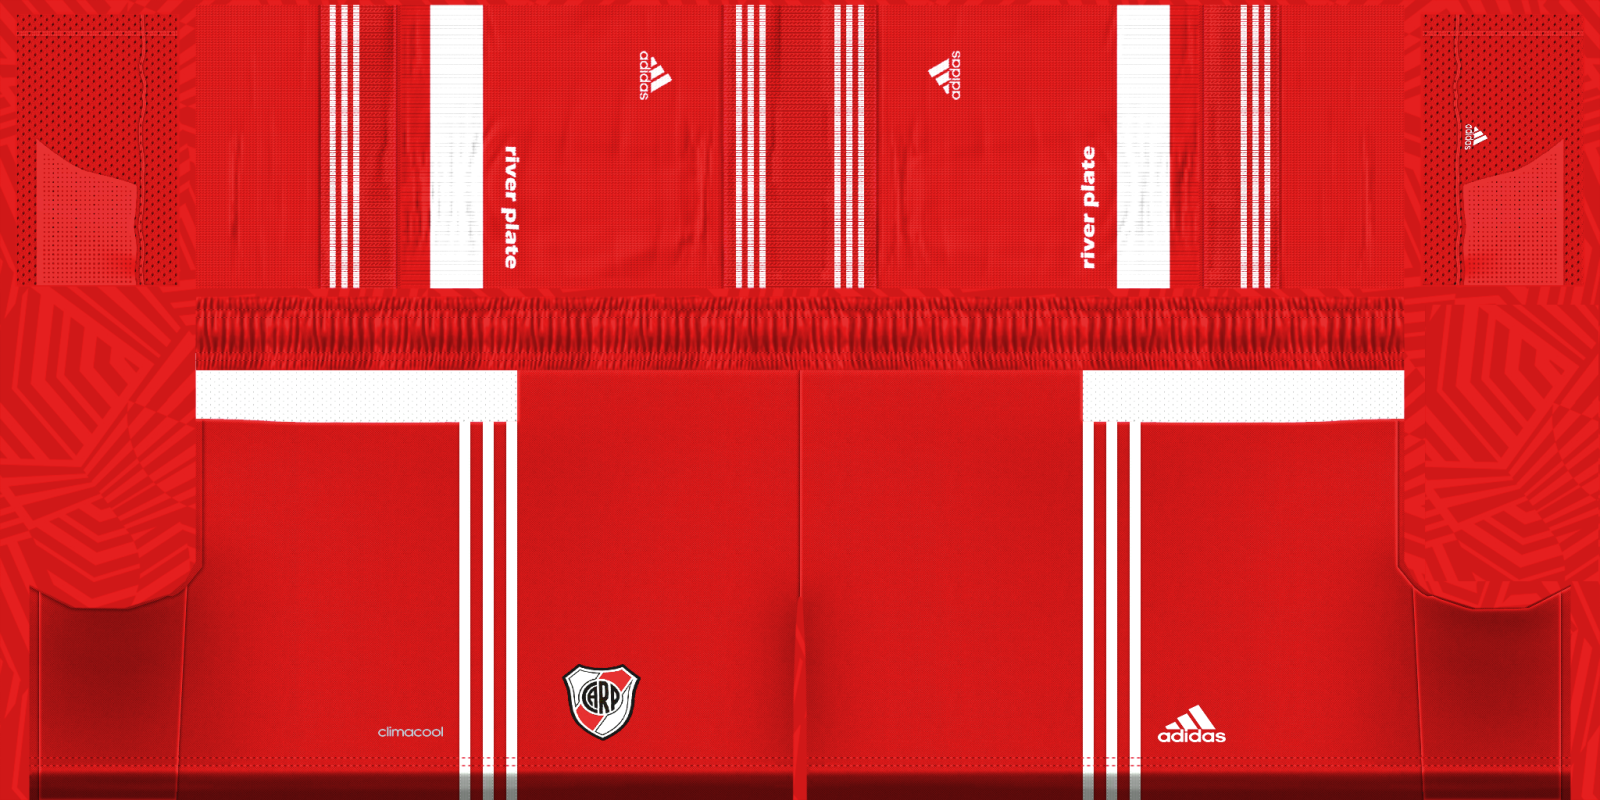 FULL CAMISETAS DE RIVER 2016 (TODAS) 73hs3c